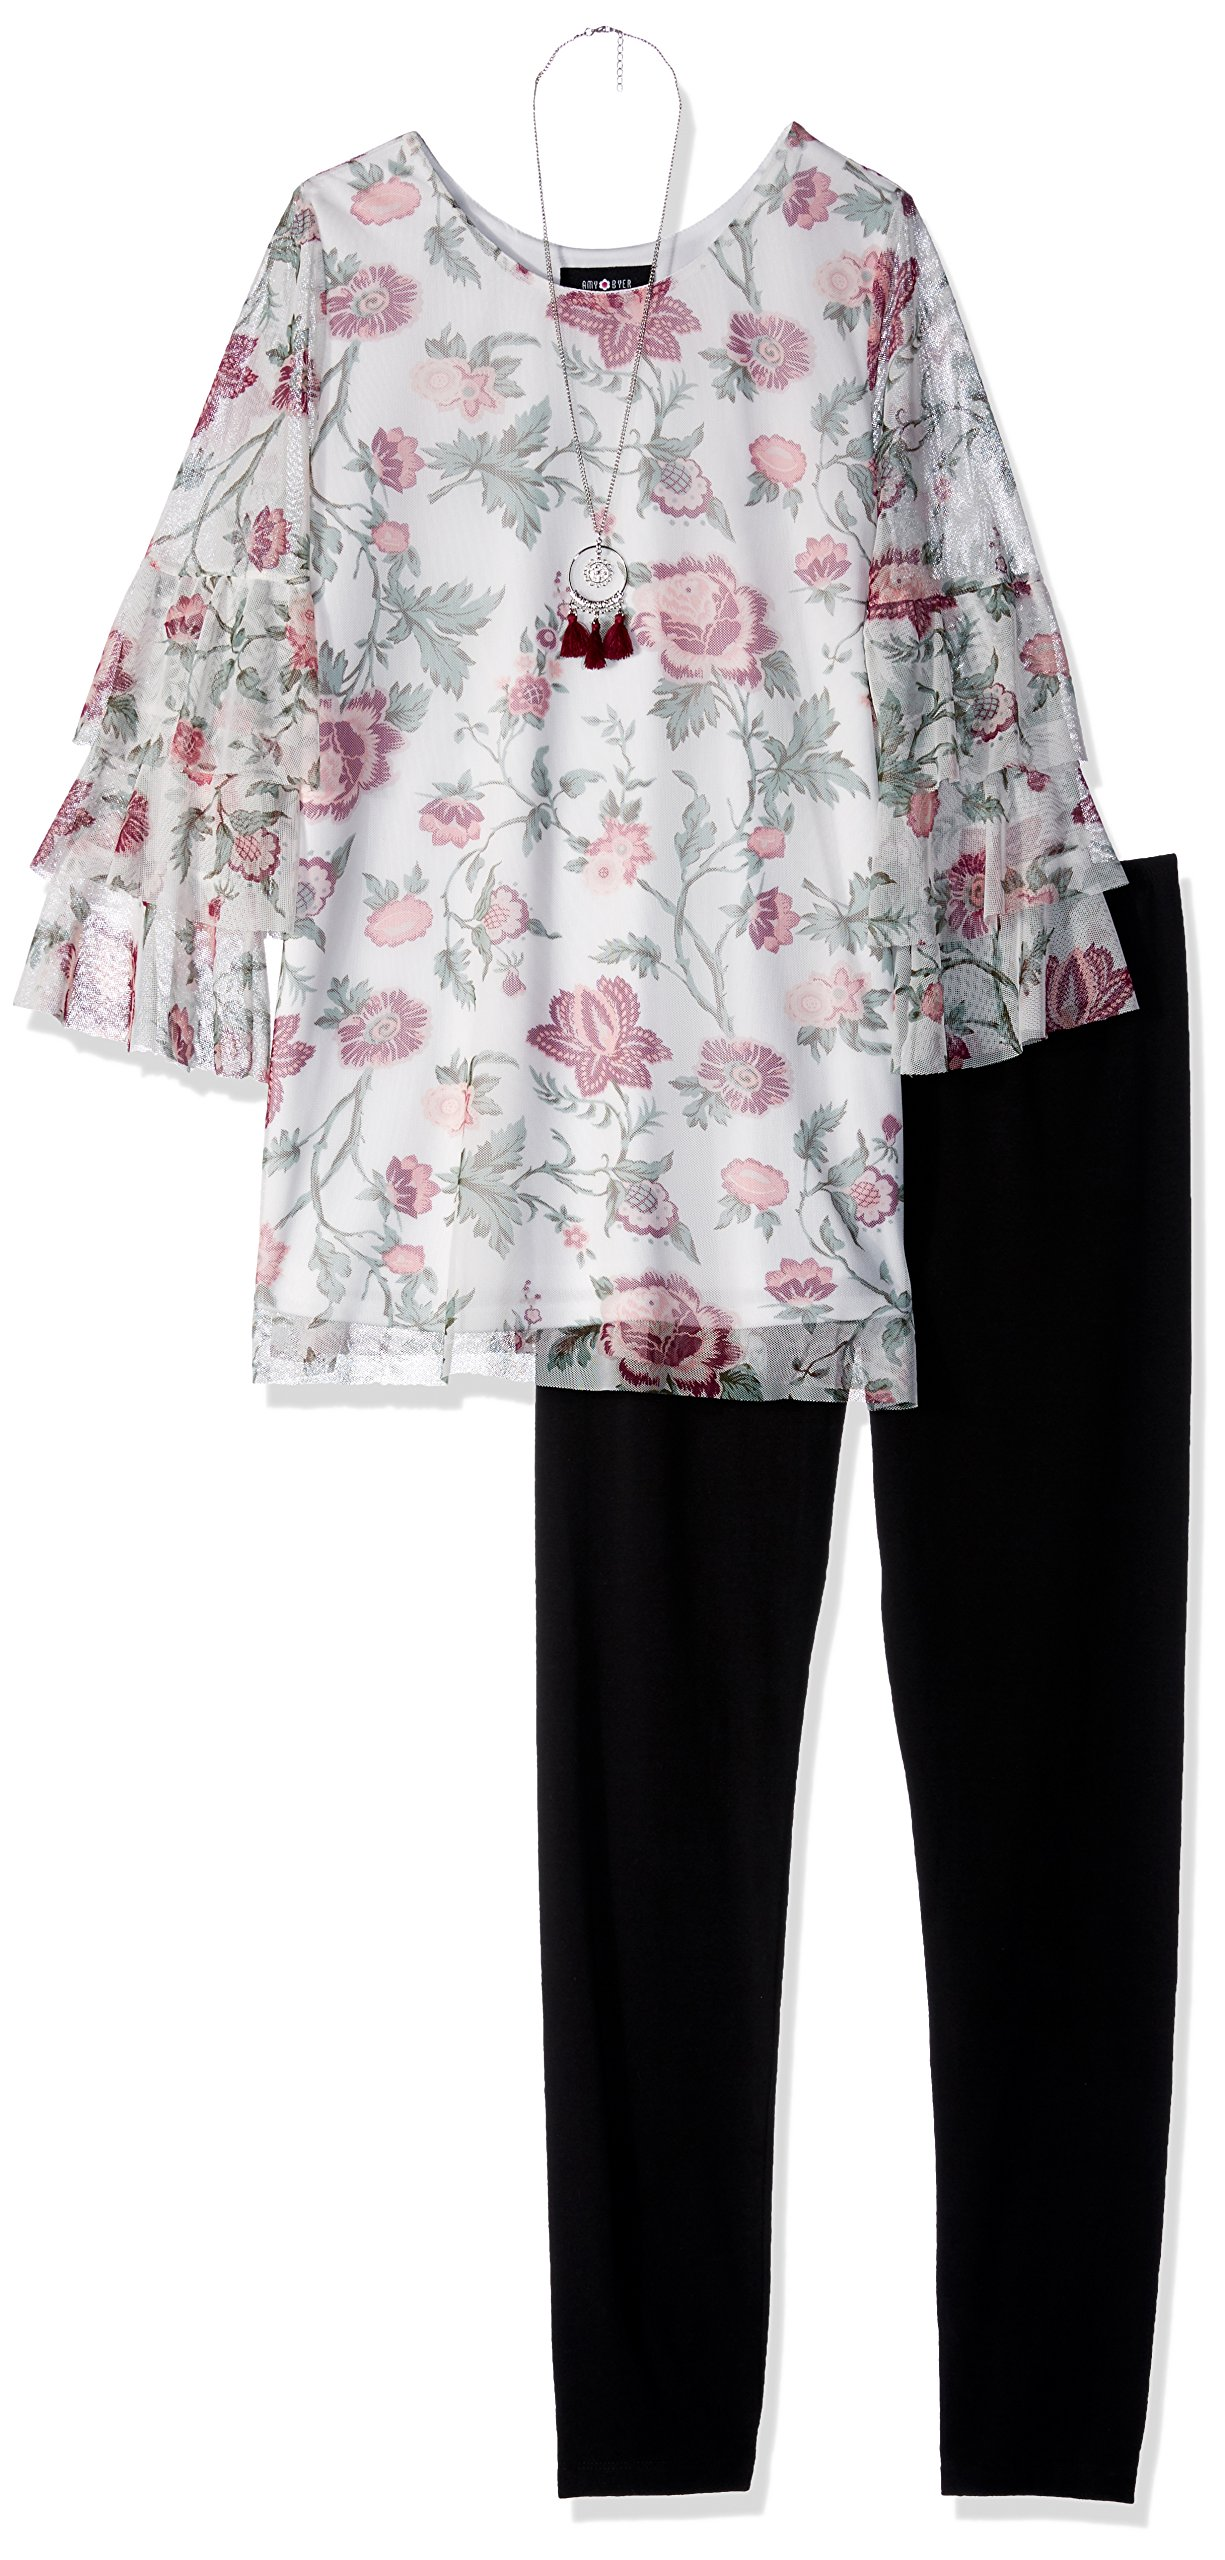 Amy Byer Girls' Big Long Sleeve Top and Legging Outfit Set, Swirling Floral/Black, M by Amy Byer